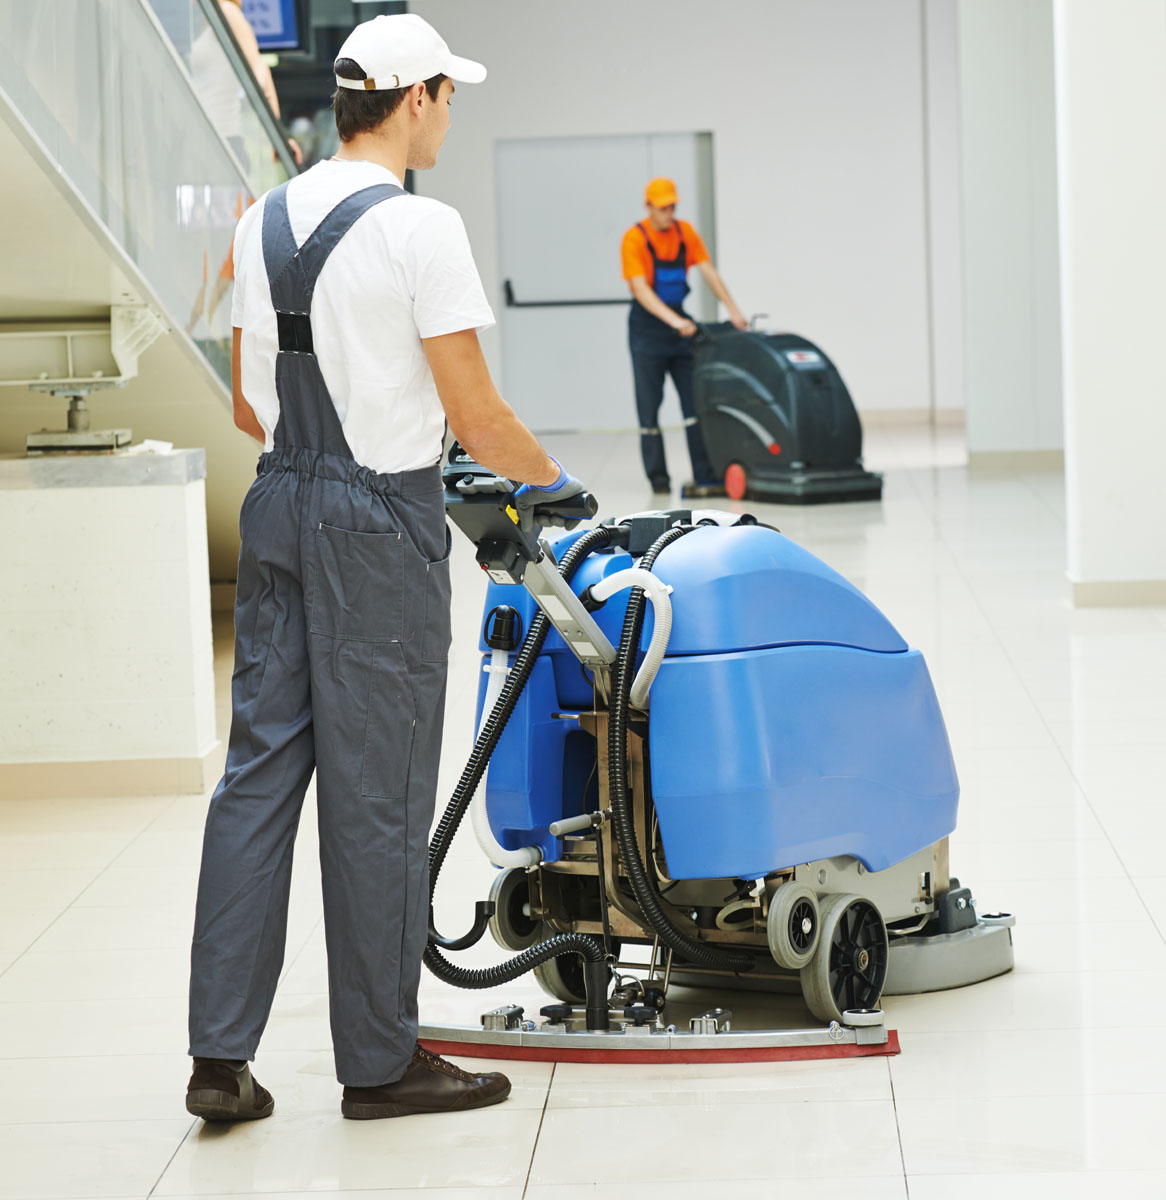 Building Cleaning Services Longueuil